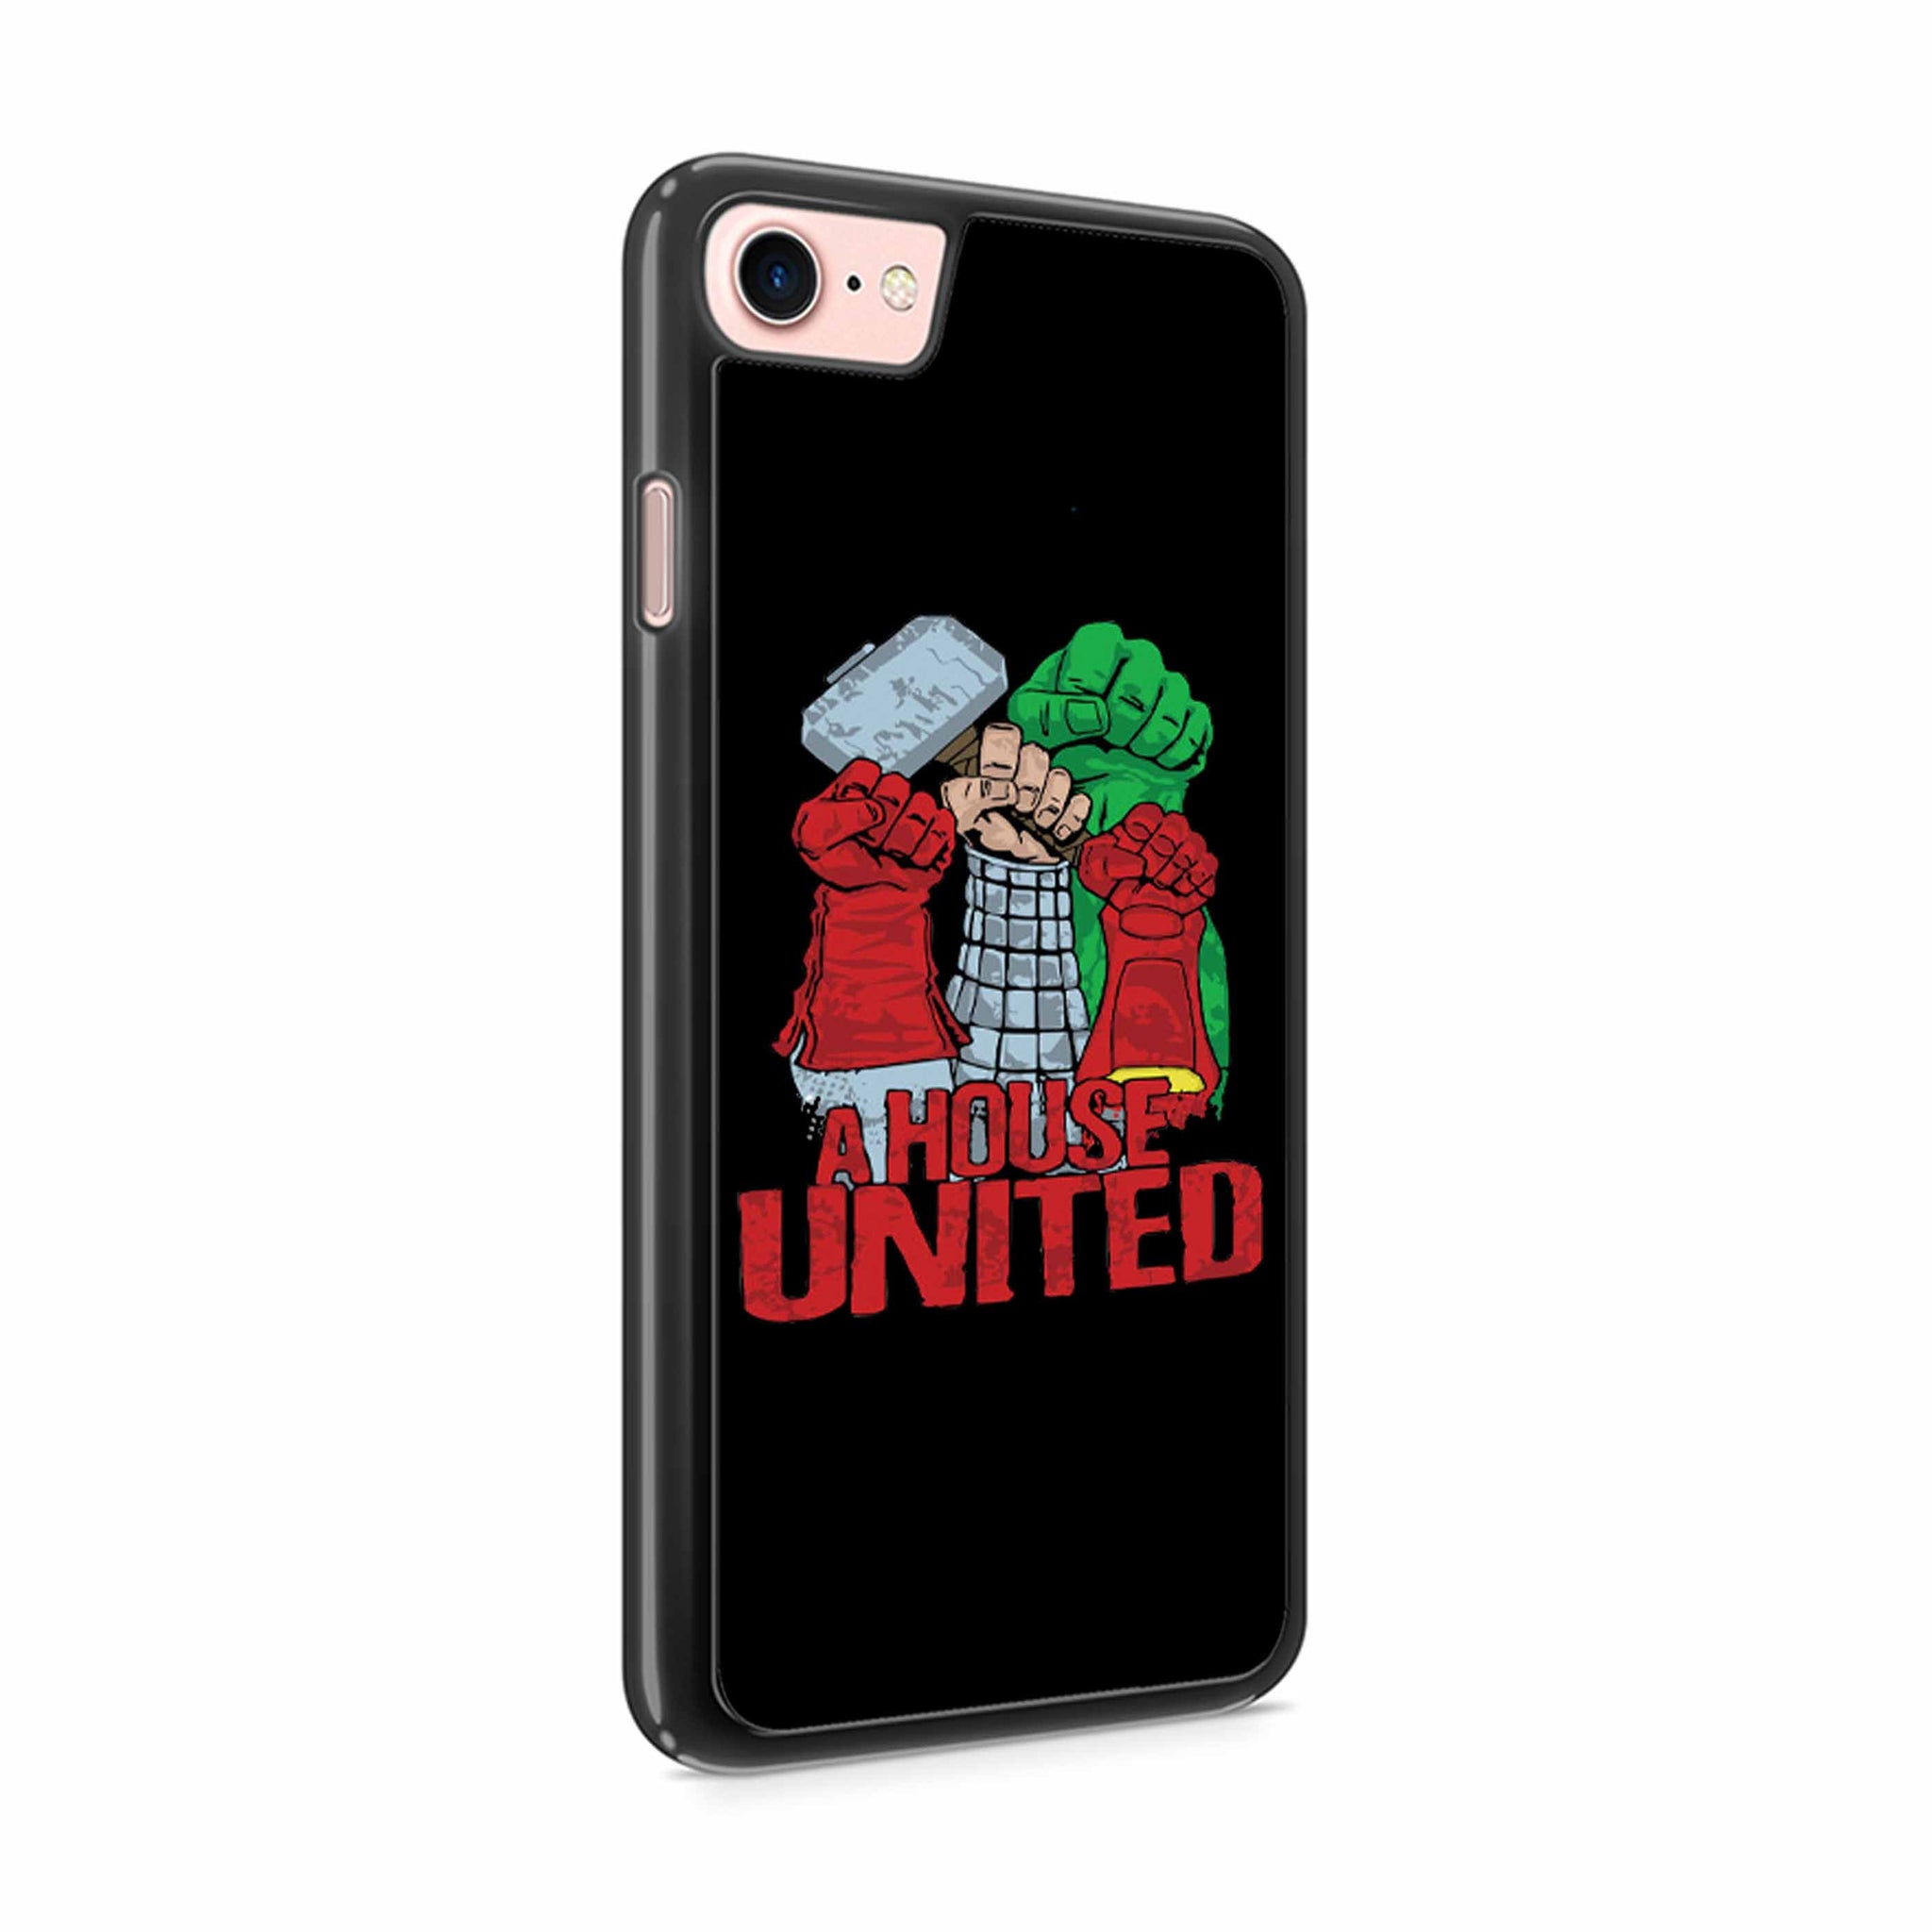 A House United Avenger Logo Iphone 7 / 7 Plus / 6 / 6s / 6 Plus / 6S Plus / 5 / 5S / 5C Case